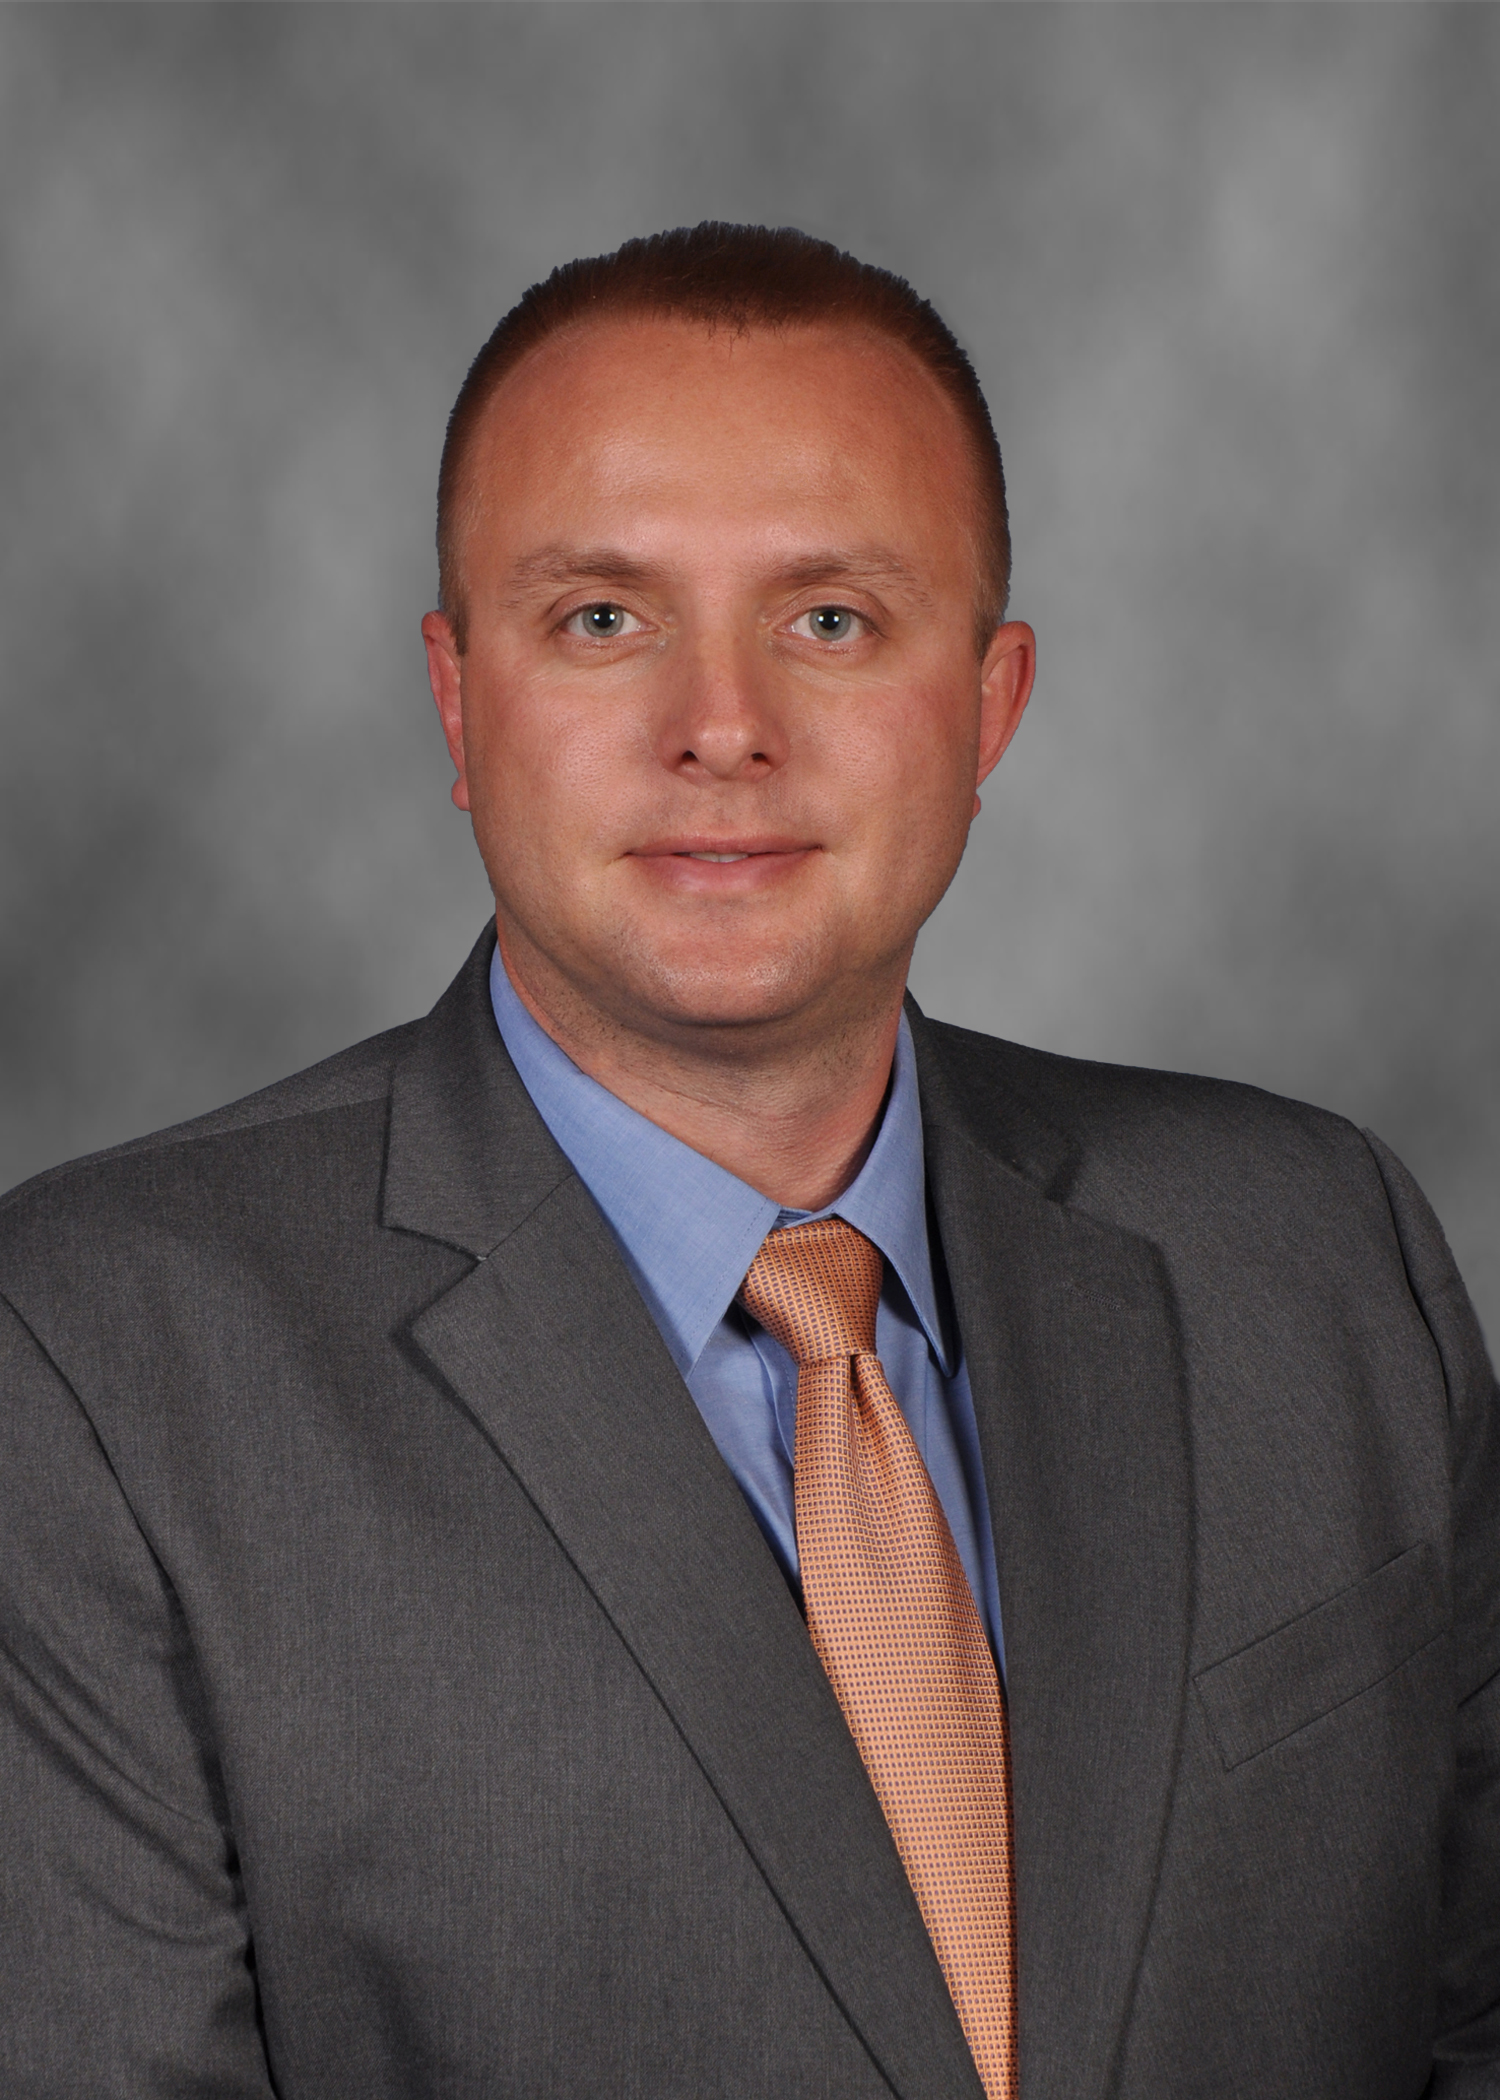 Eric Reiners, Township Administrator